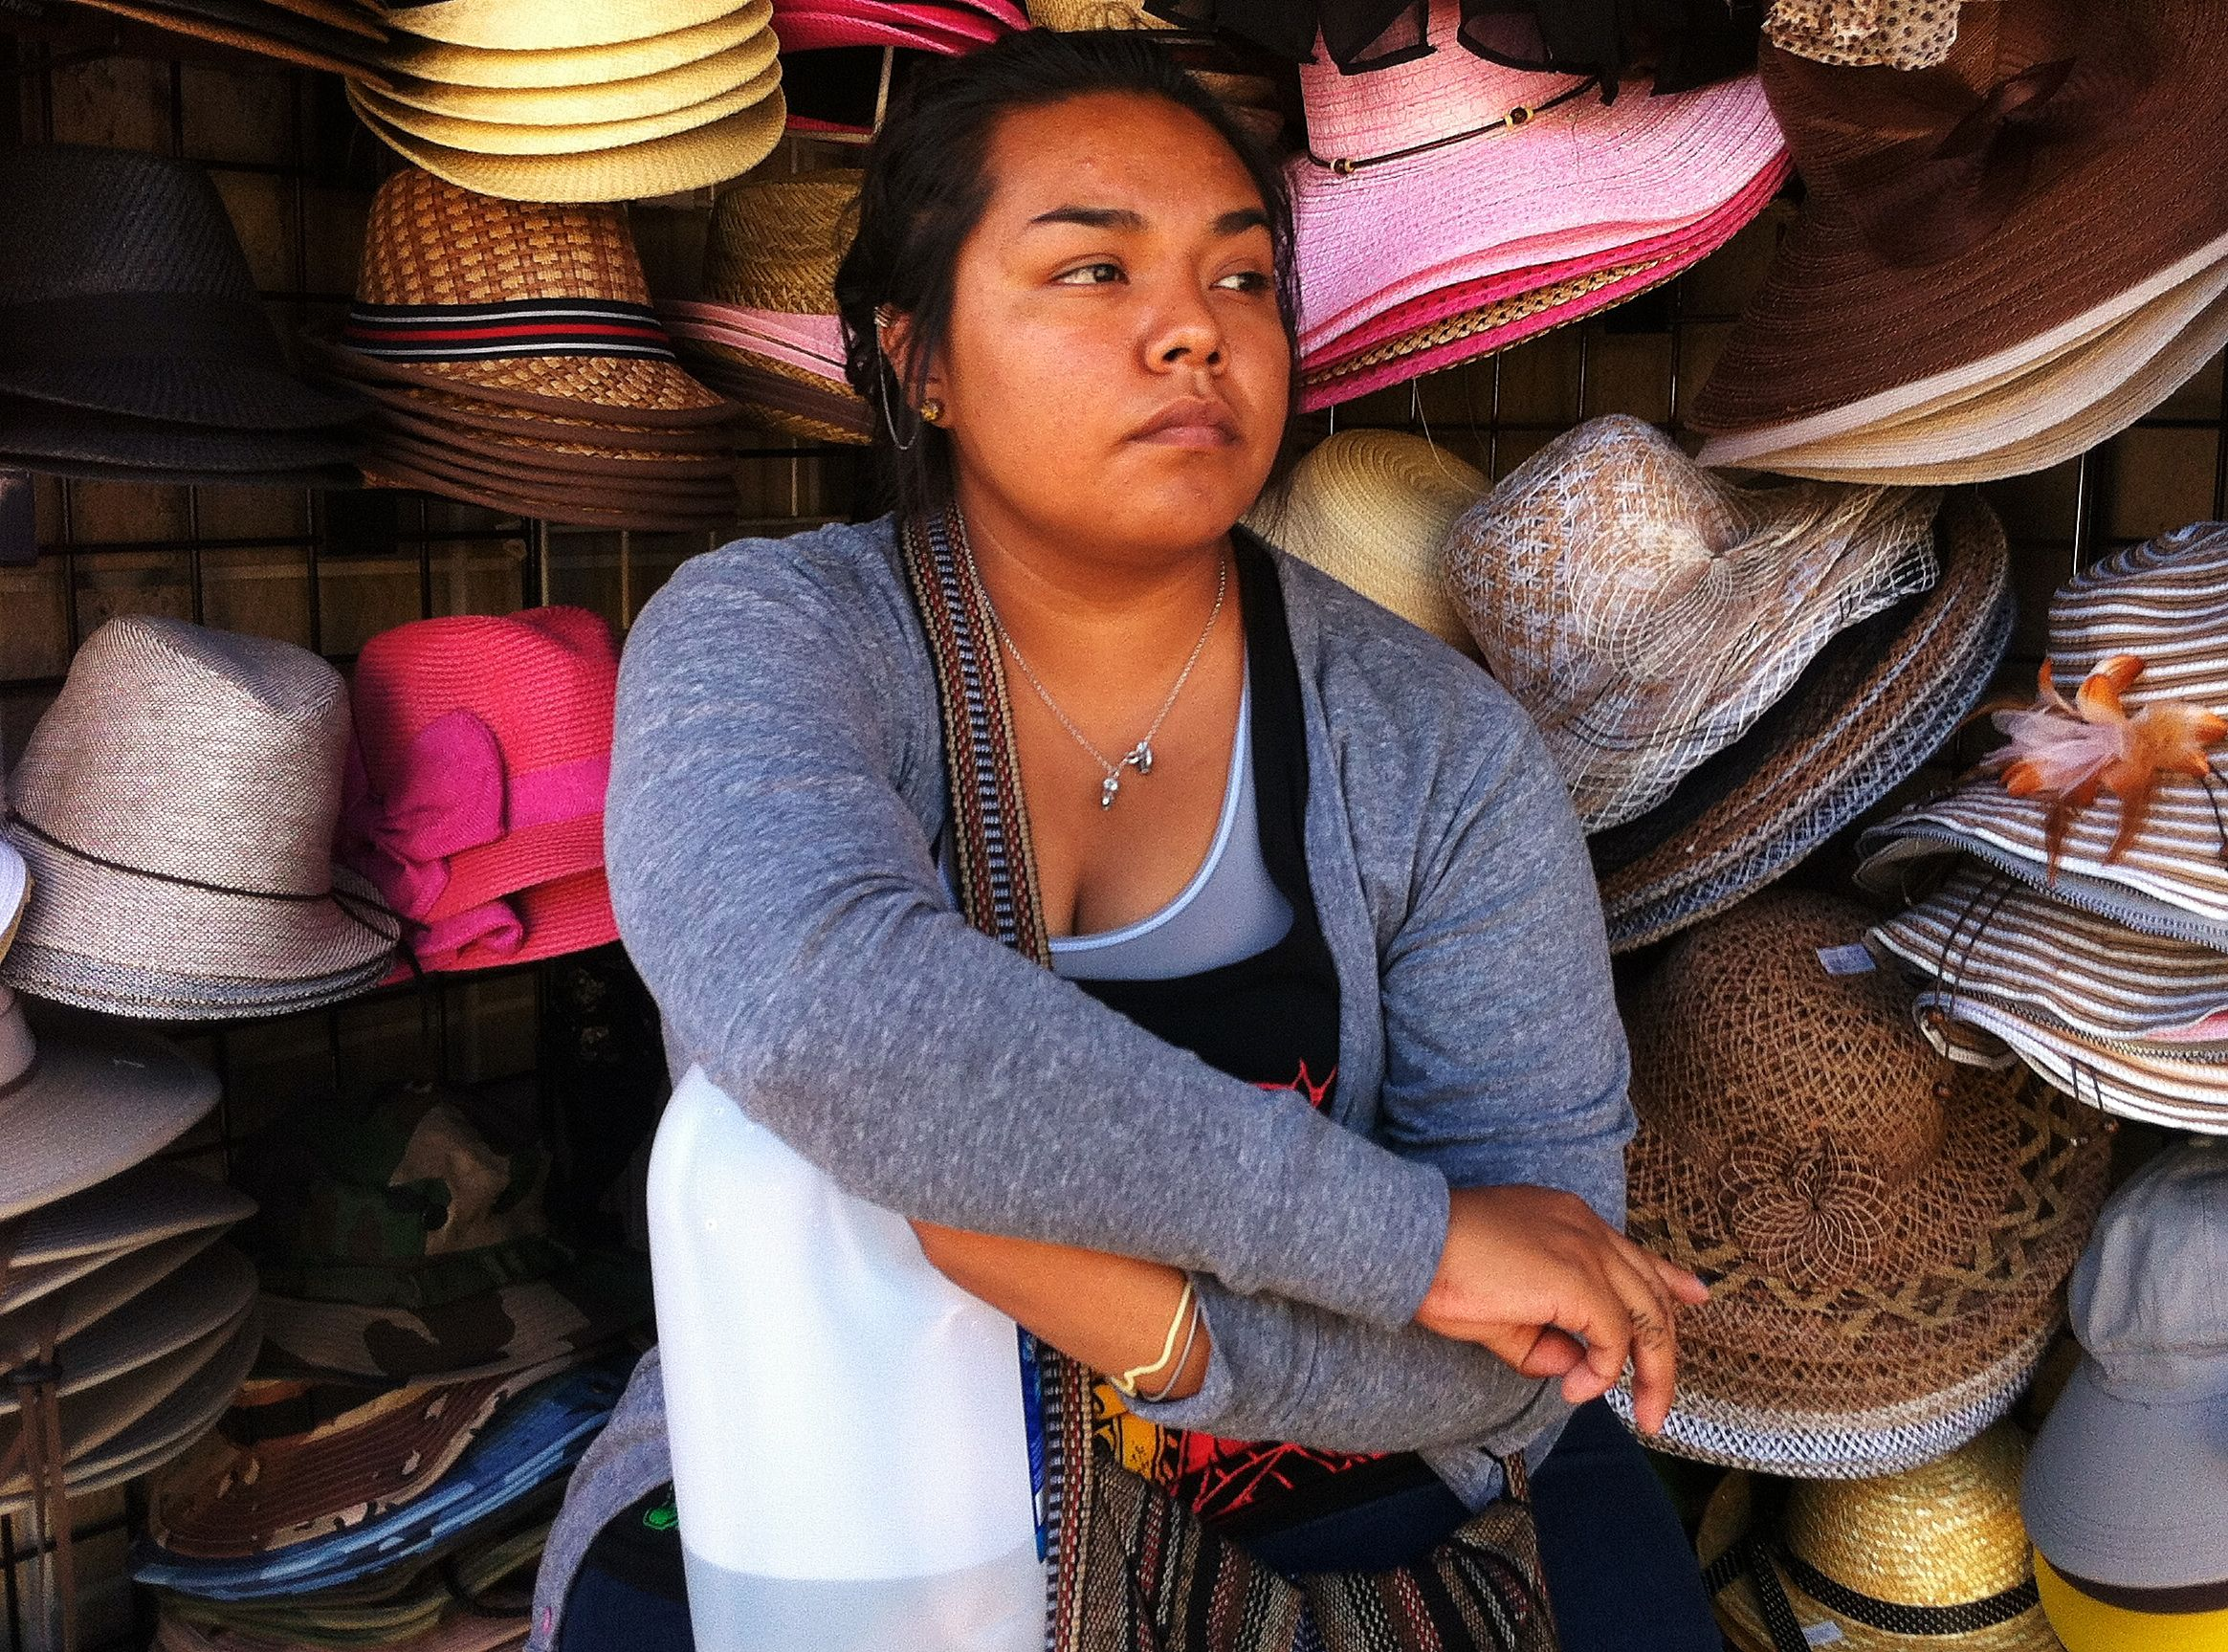 Woman sitting in front of hat display